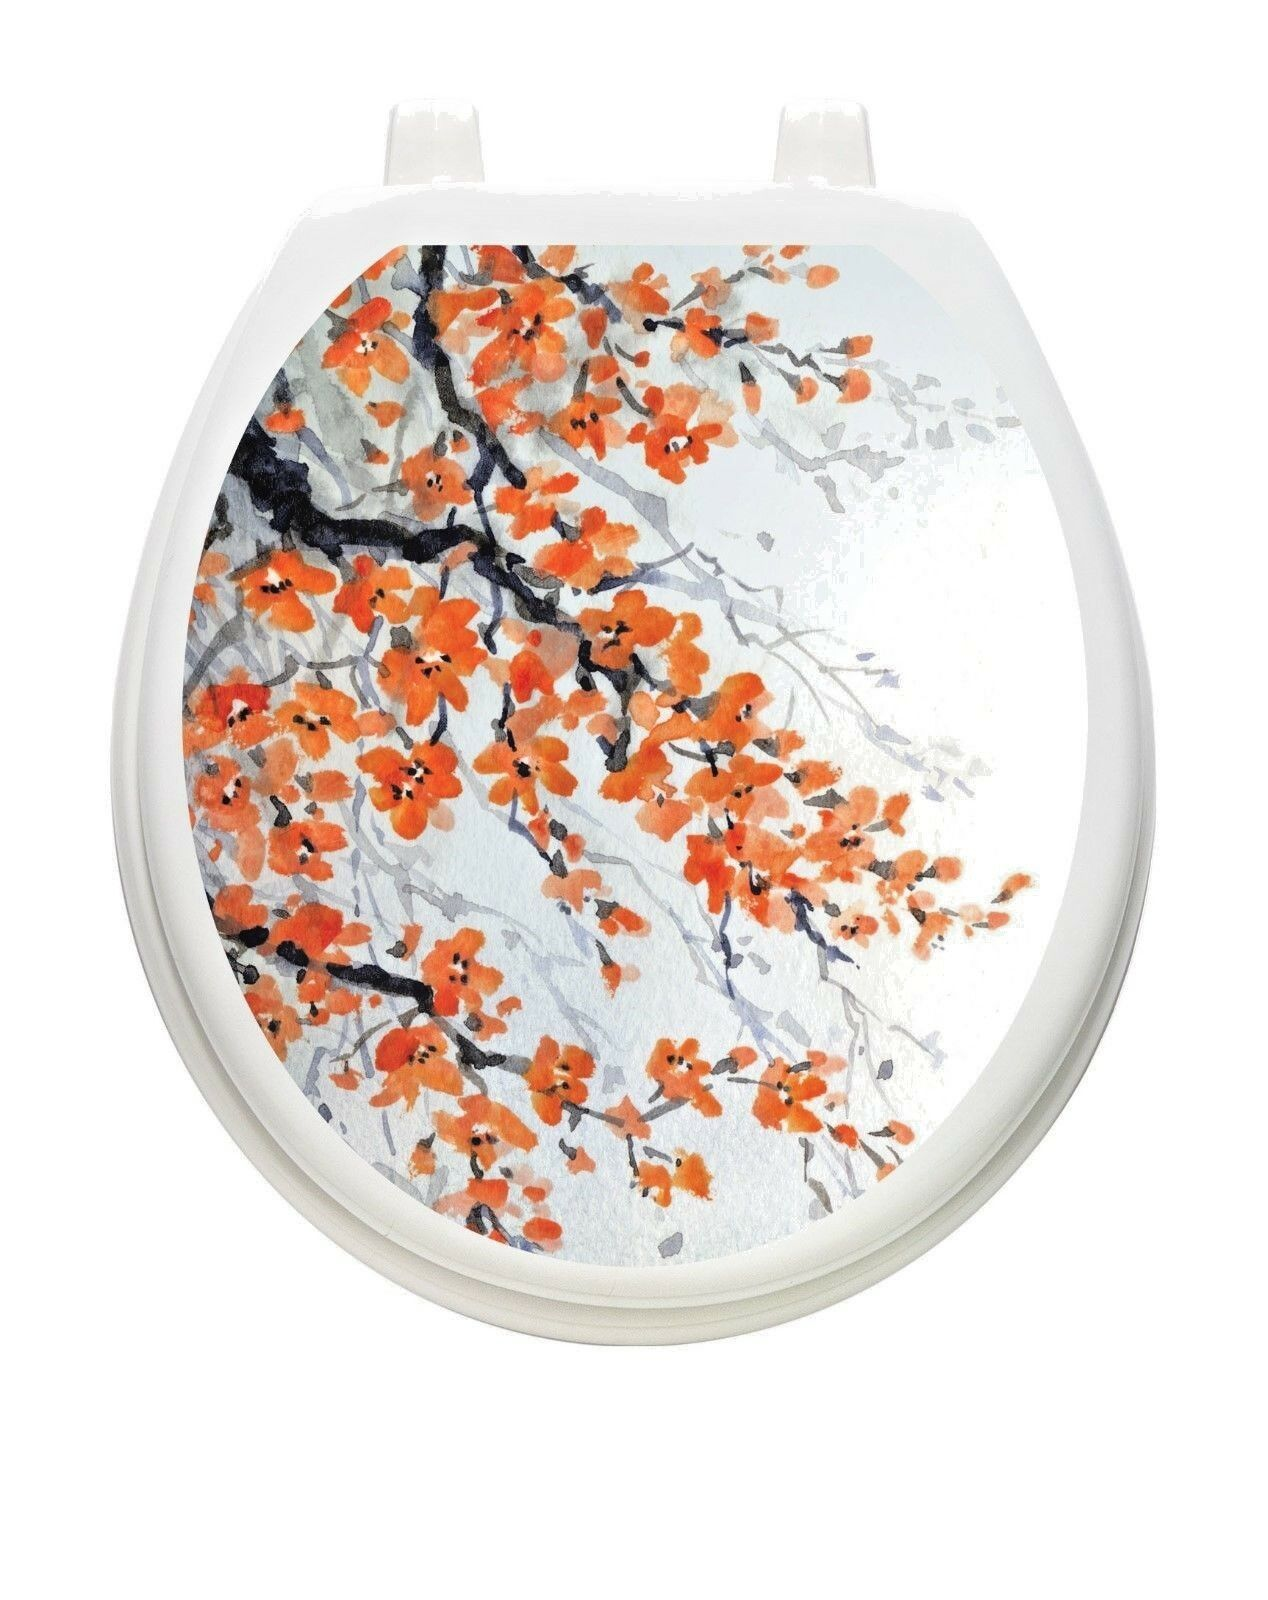 Toilet Tattoos Toilet Seat Cover Decal Sweety Seaty Size Round Standard For Sale Online Ebay